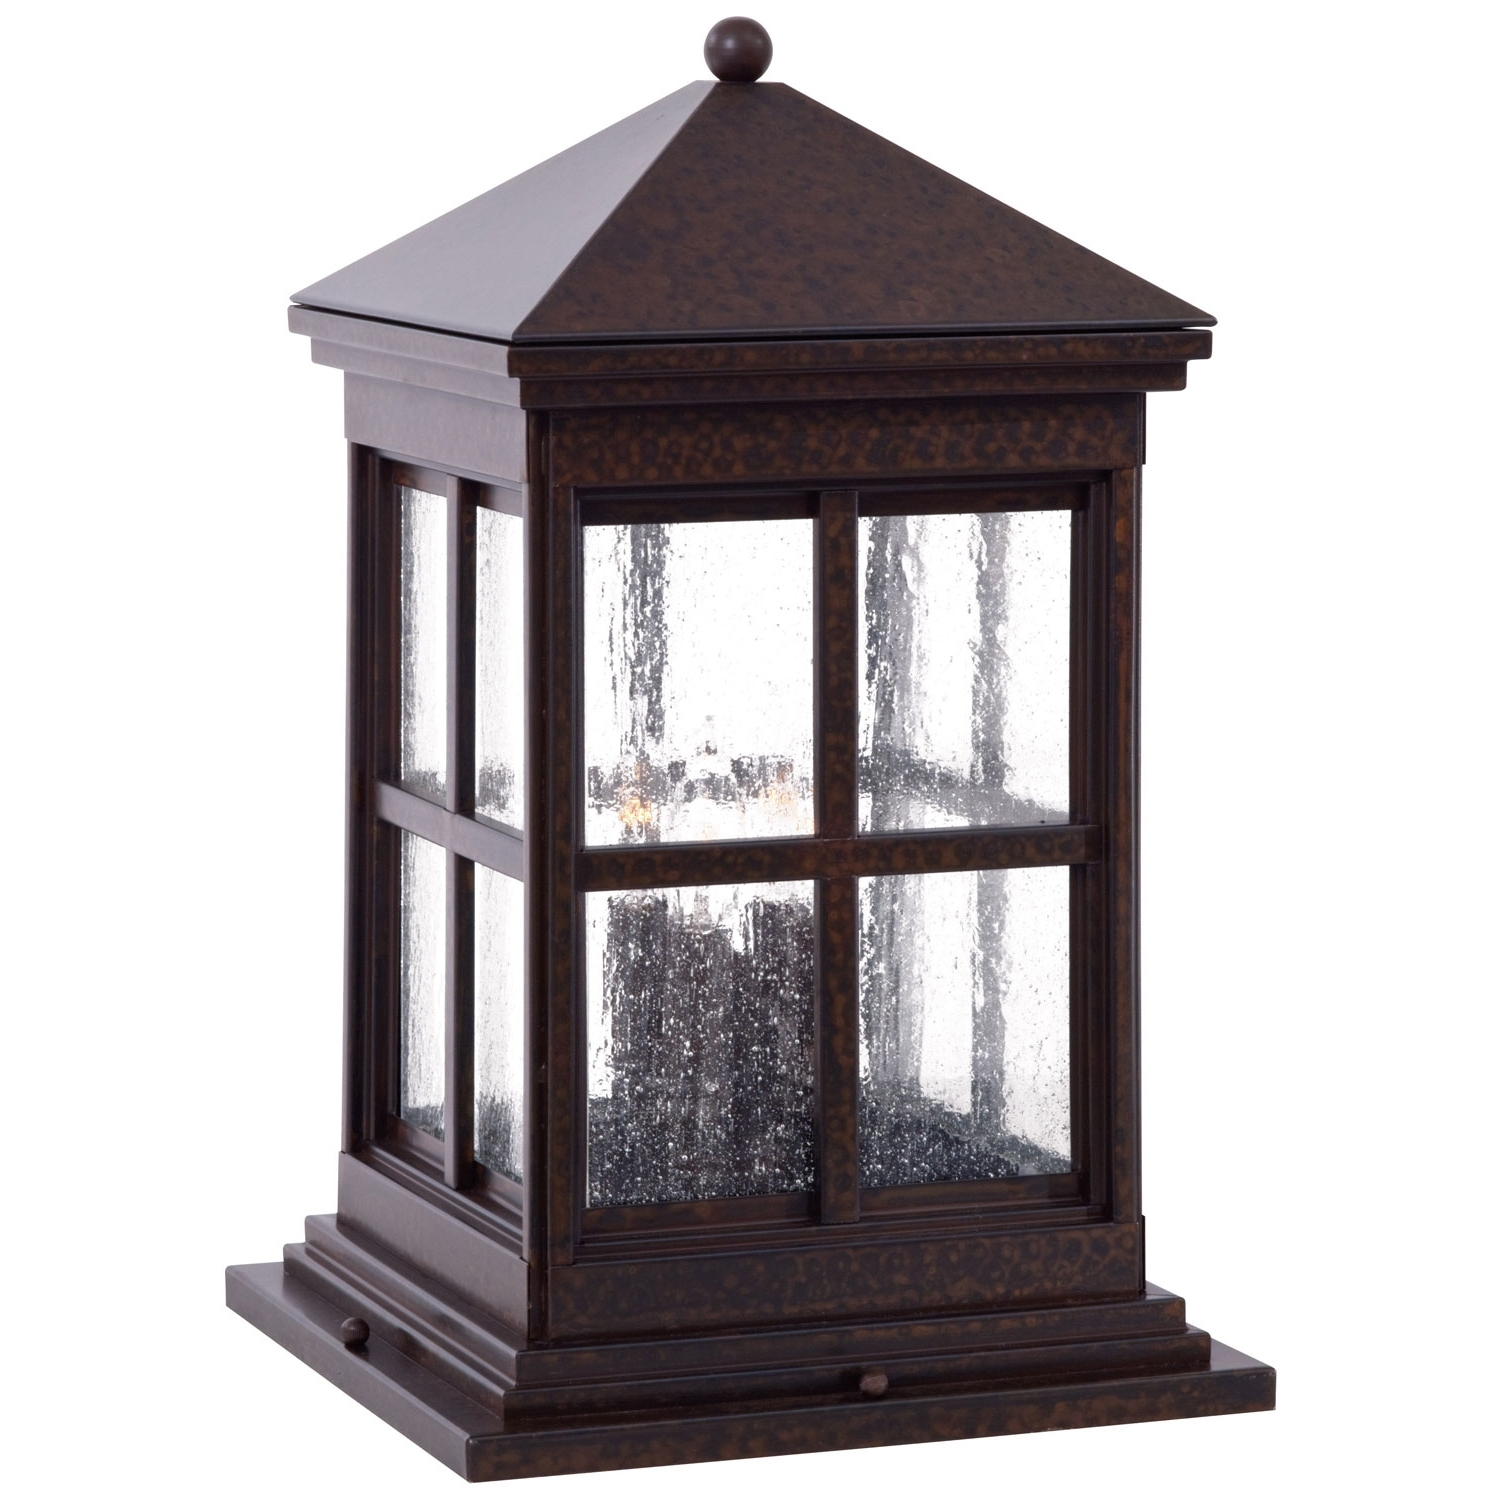 Most Popular Outdoor Lanterns For Pillars Intended For Column Mount Outdoor Lights (View 7 of 20)